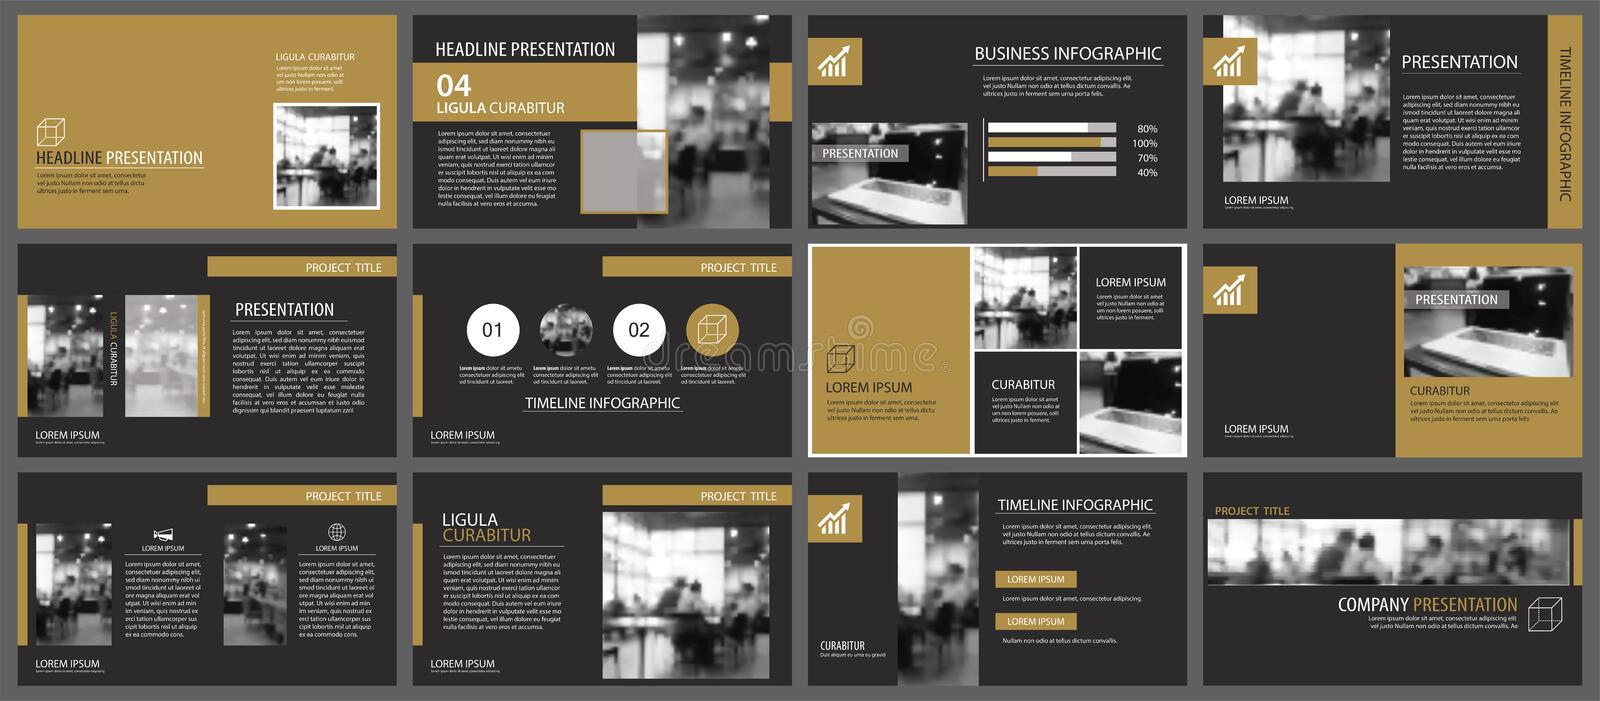 Black gold presentation templates and infographics elements background. Use for business annual report, flyer, corporate marketing royalty free illustration